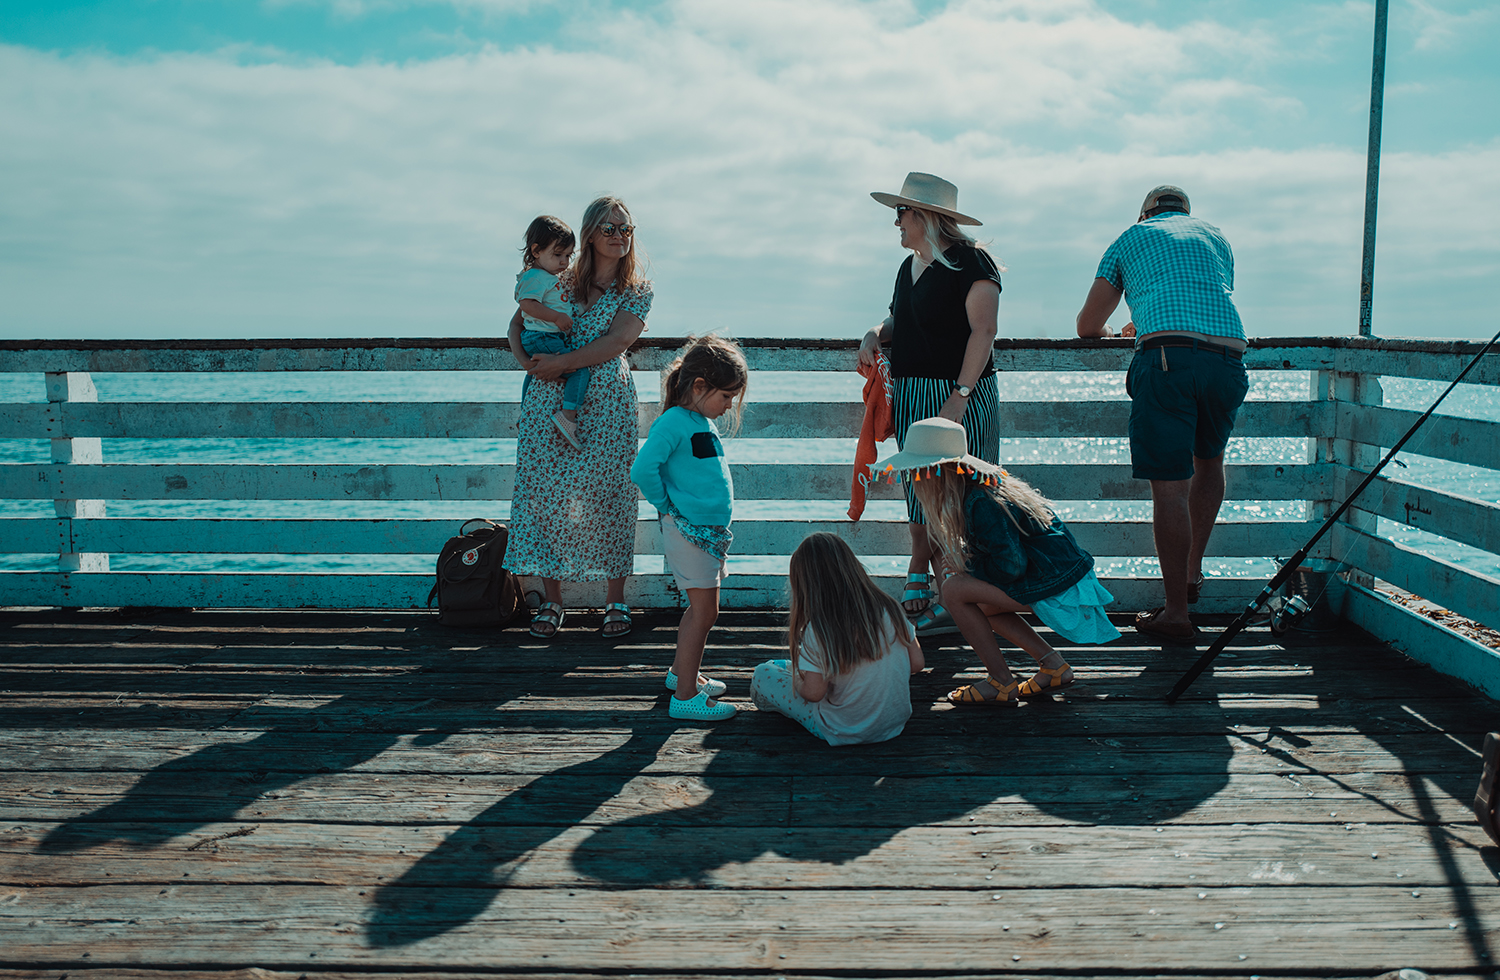 A family on a board walk